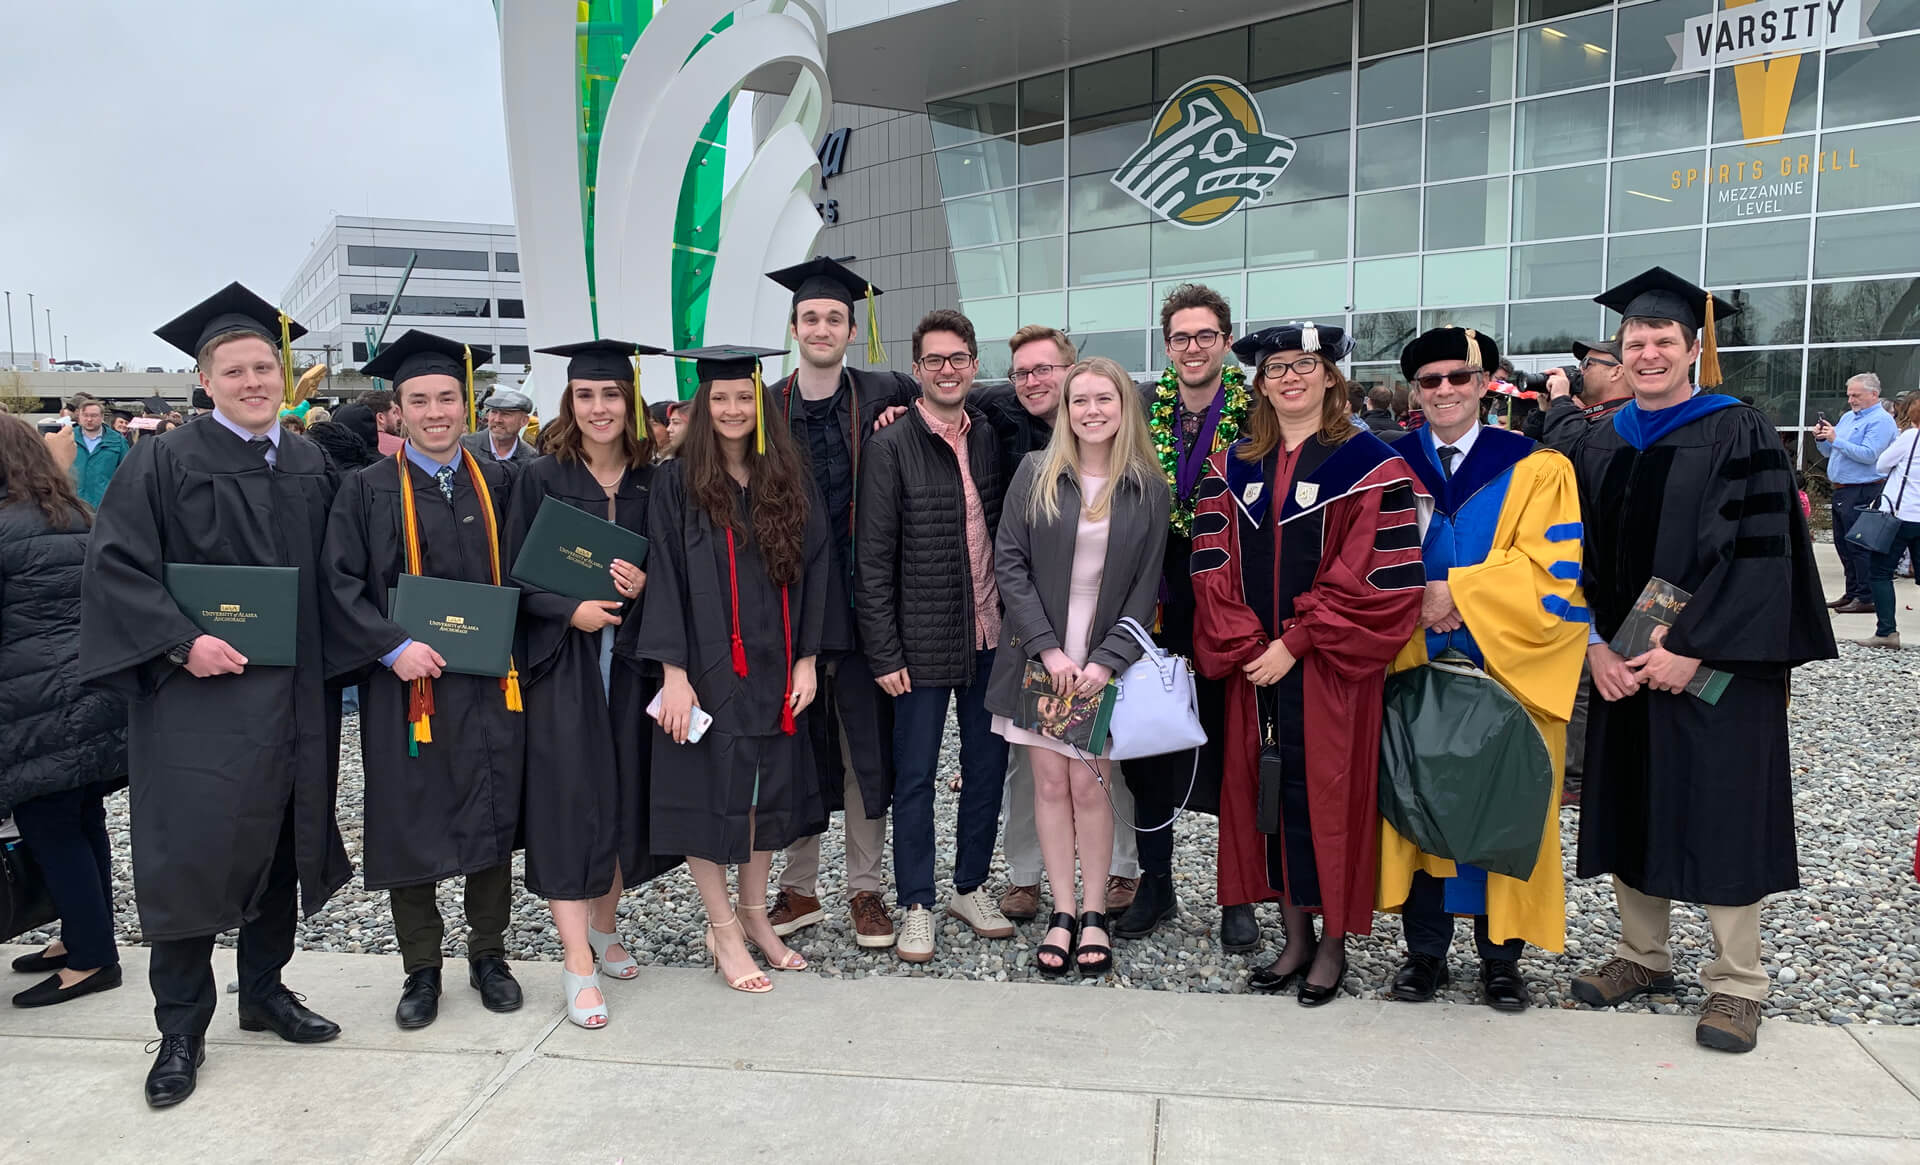 Pictured left to right: Paul Melin, Alexander Jackstadt, Morgan Rowe, Heather Jesse, Gavin Triplett, Nathanial Watanabe, Christian Bullard, Clare Baldwin, Joshua Watanabe, Associate Professor Angie Zheng, Professor Paul Johnson, and Associate Professor Lance Howe.